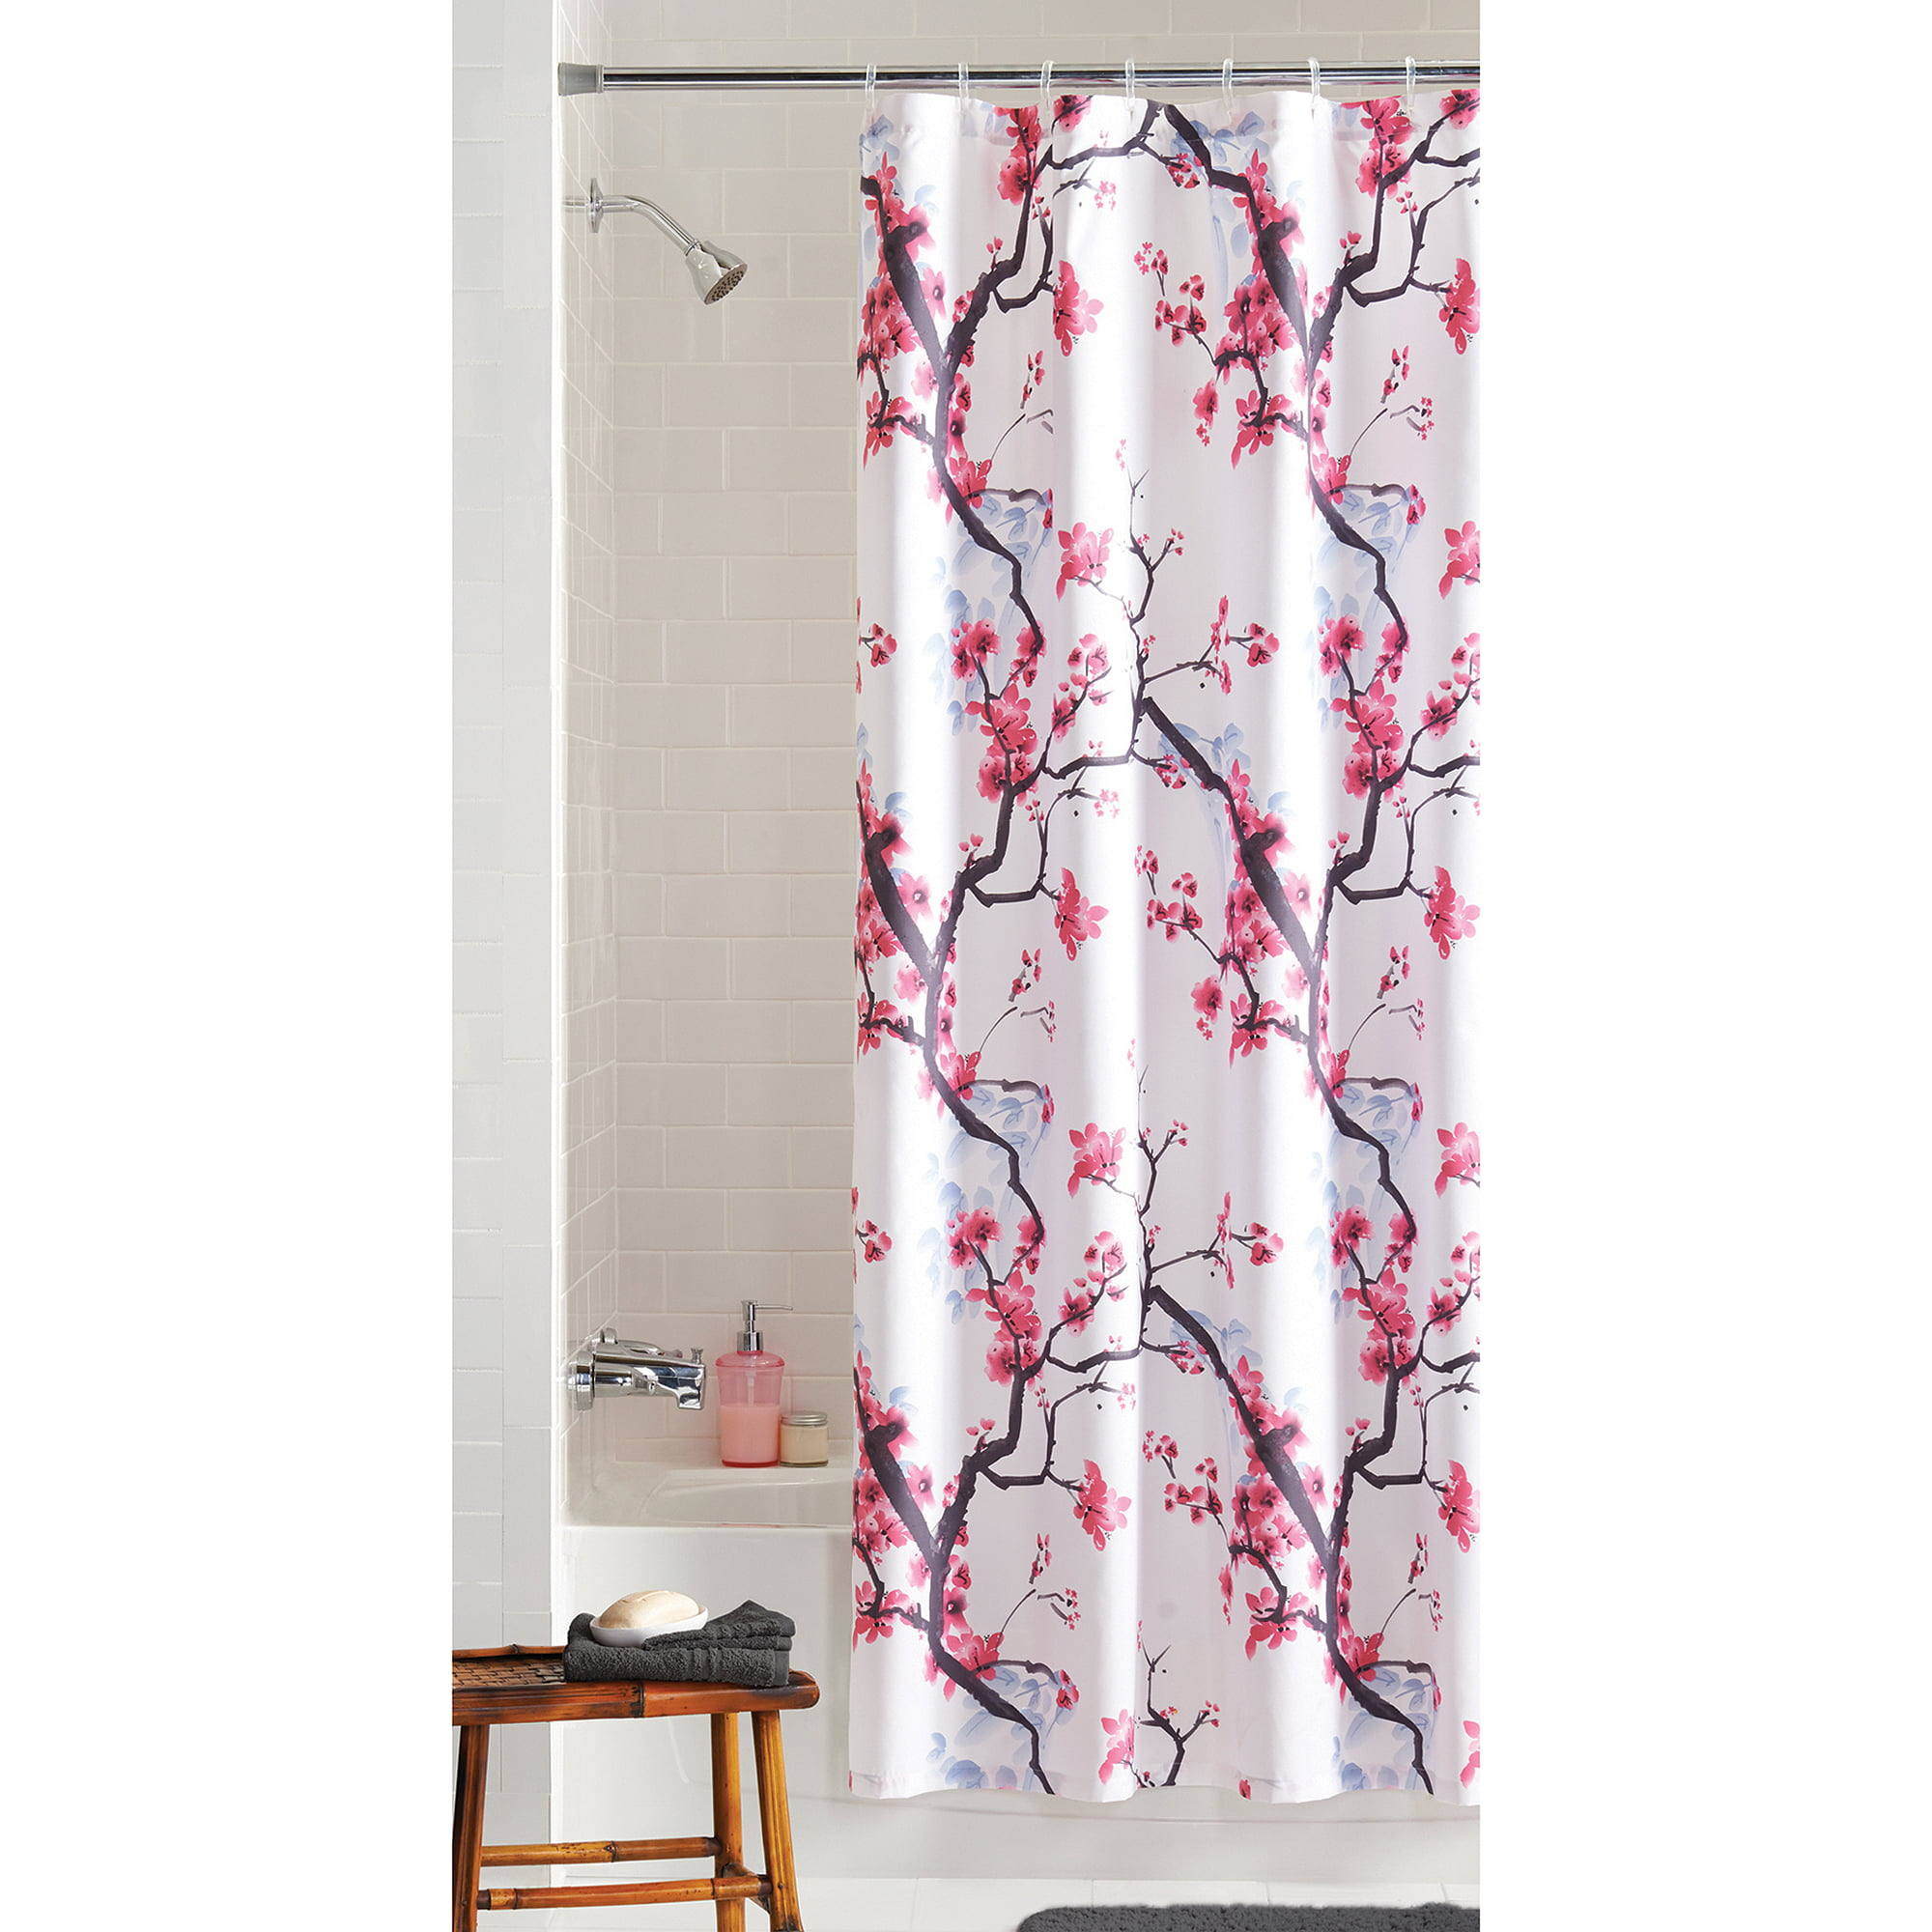 Maytex Pink Blossom Fabric Shower Curtain